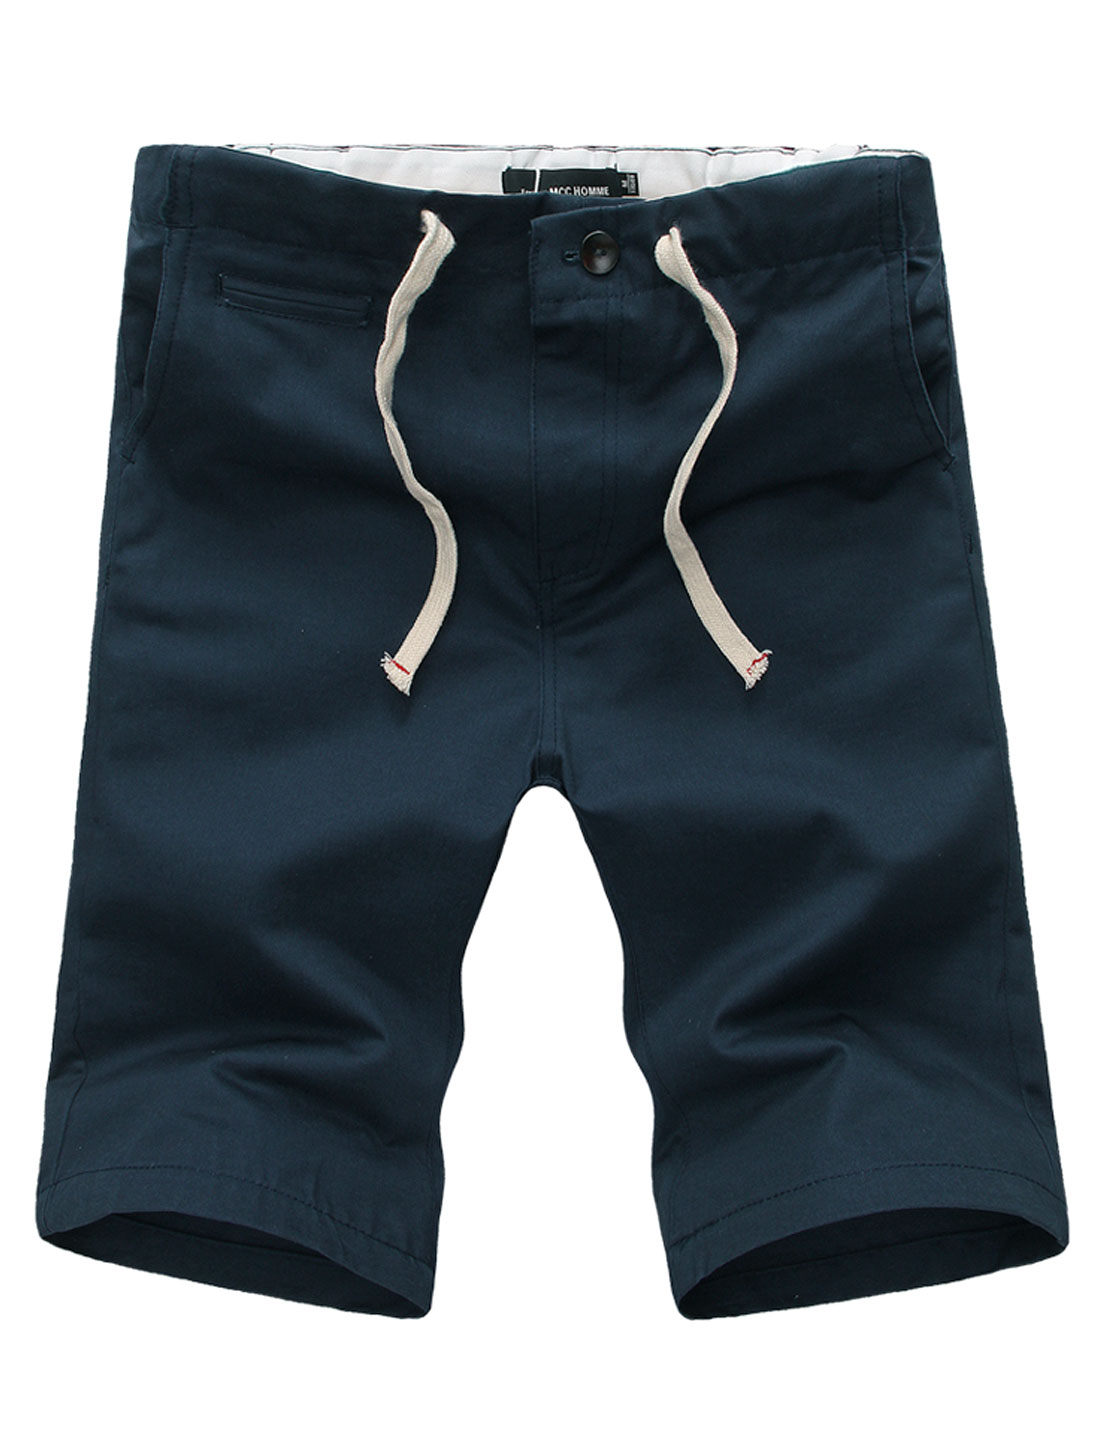 Men Elastic Drawstring Waist Zipper Fly Loose Fit Shorts Navy Blue W32